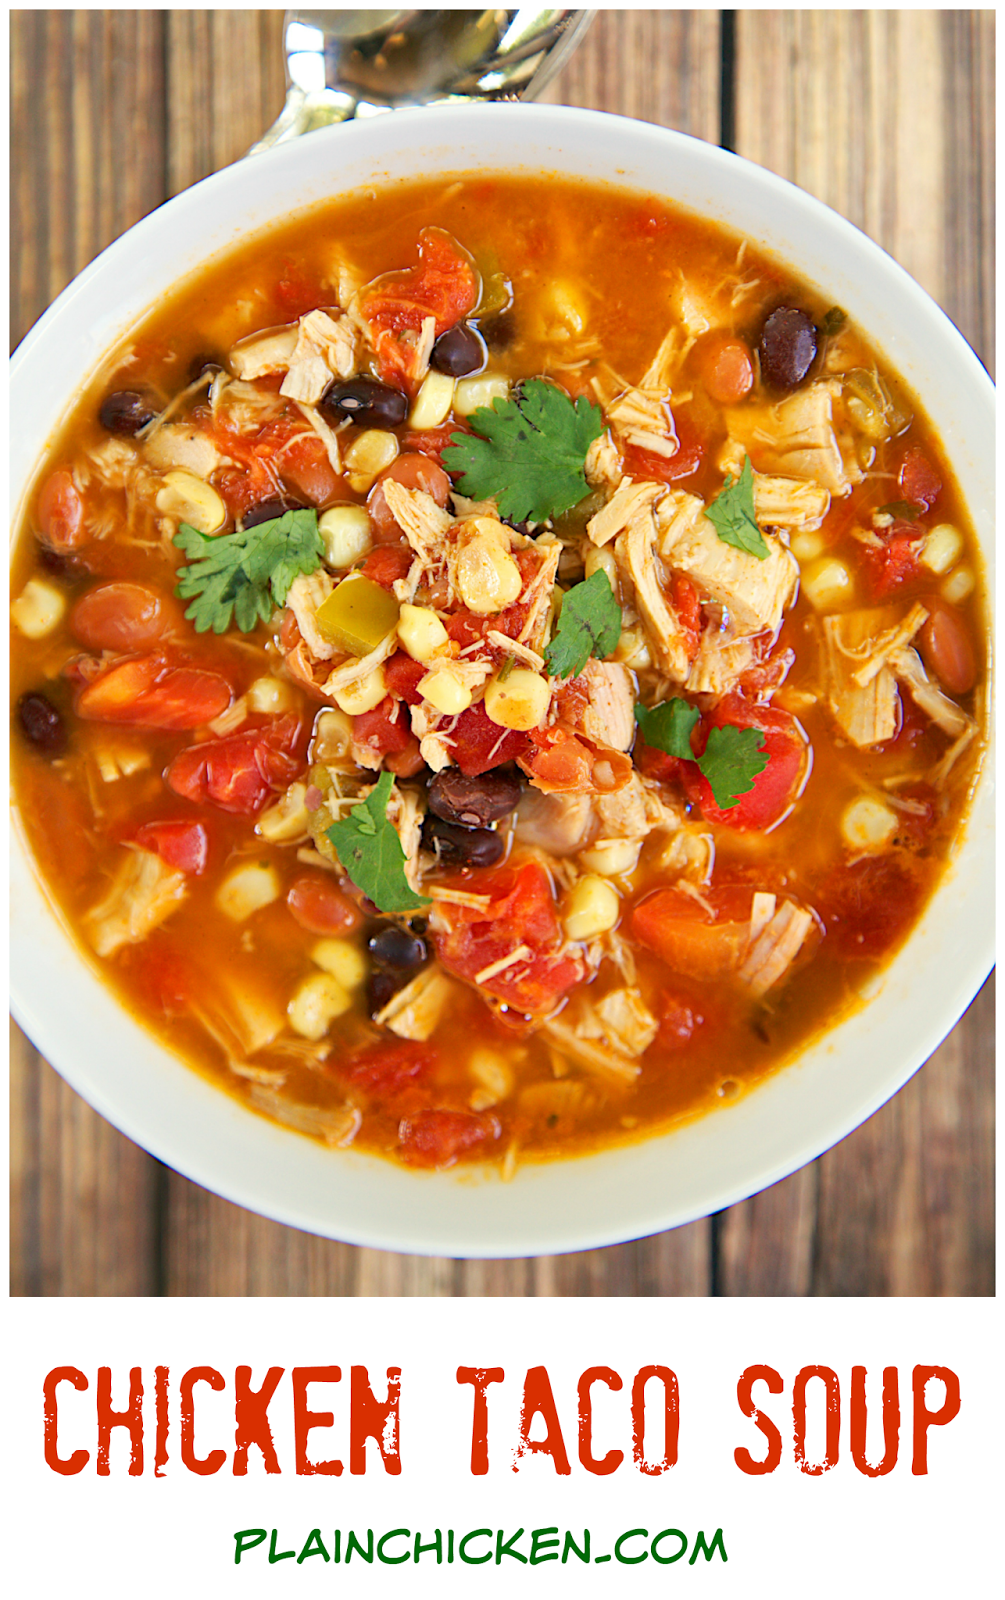 Chicken Taco Soup Recipe Chicken Beans Corn Tomatoes Ranch Mix And Taco Seasoning Can Be